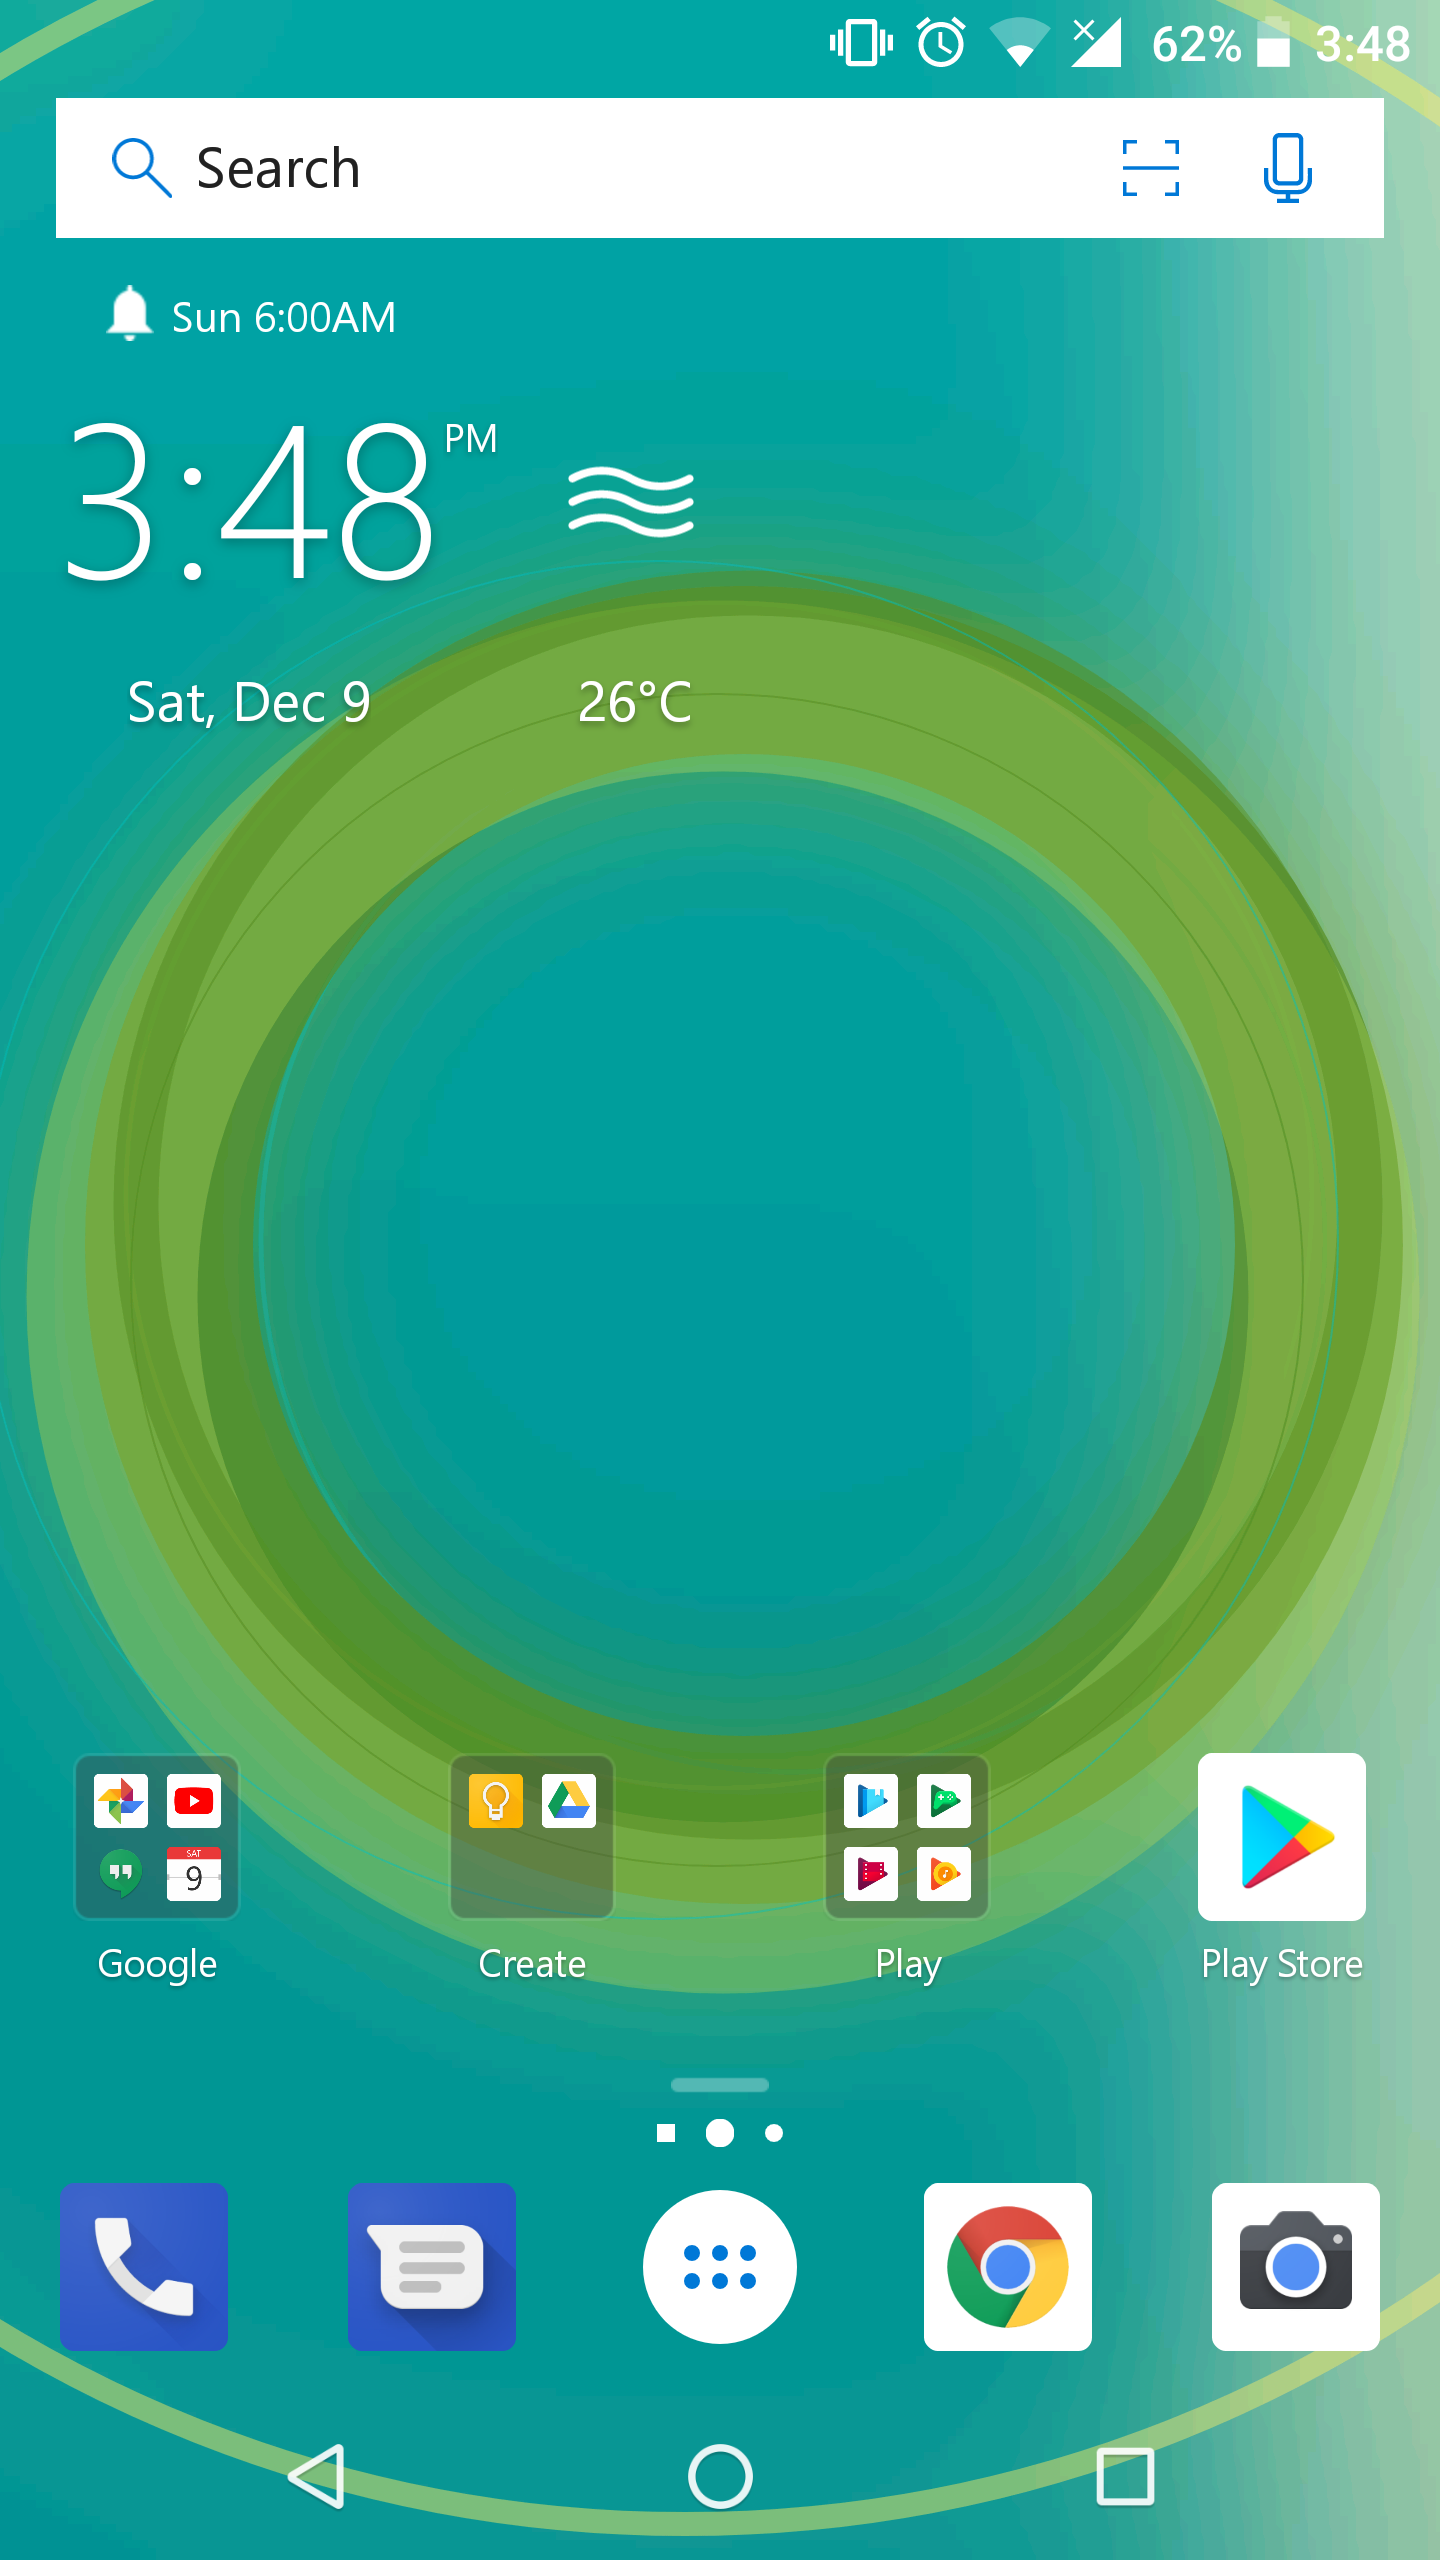 Microsoft_Launcher_Homescreen